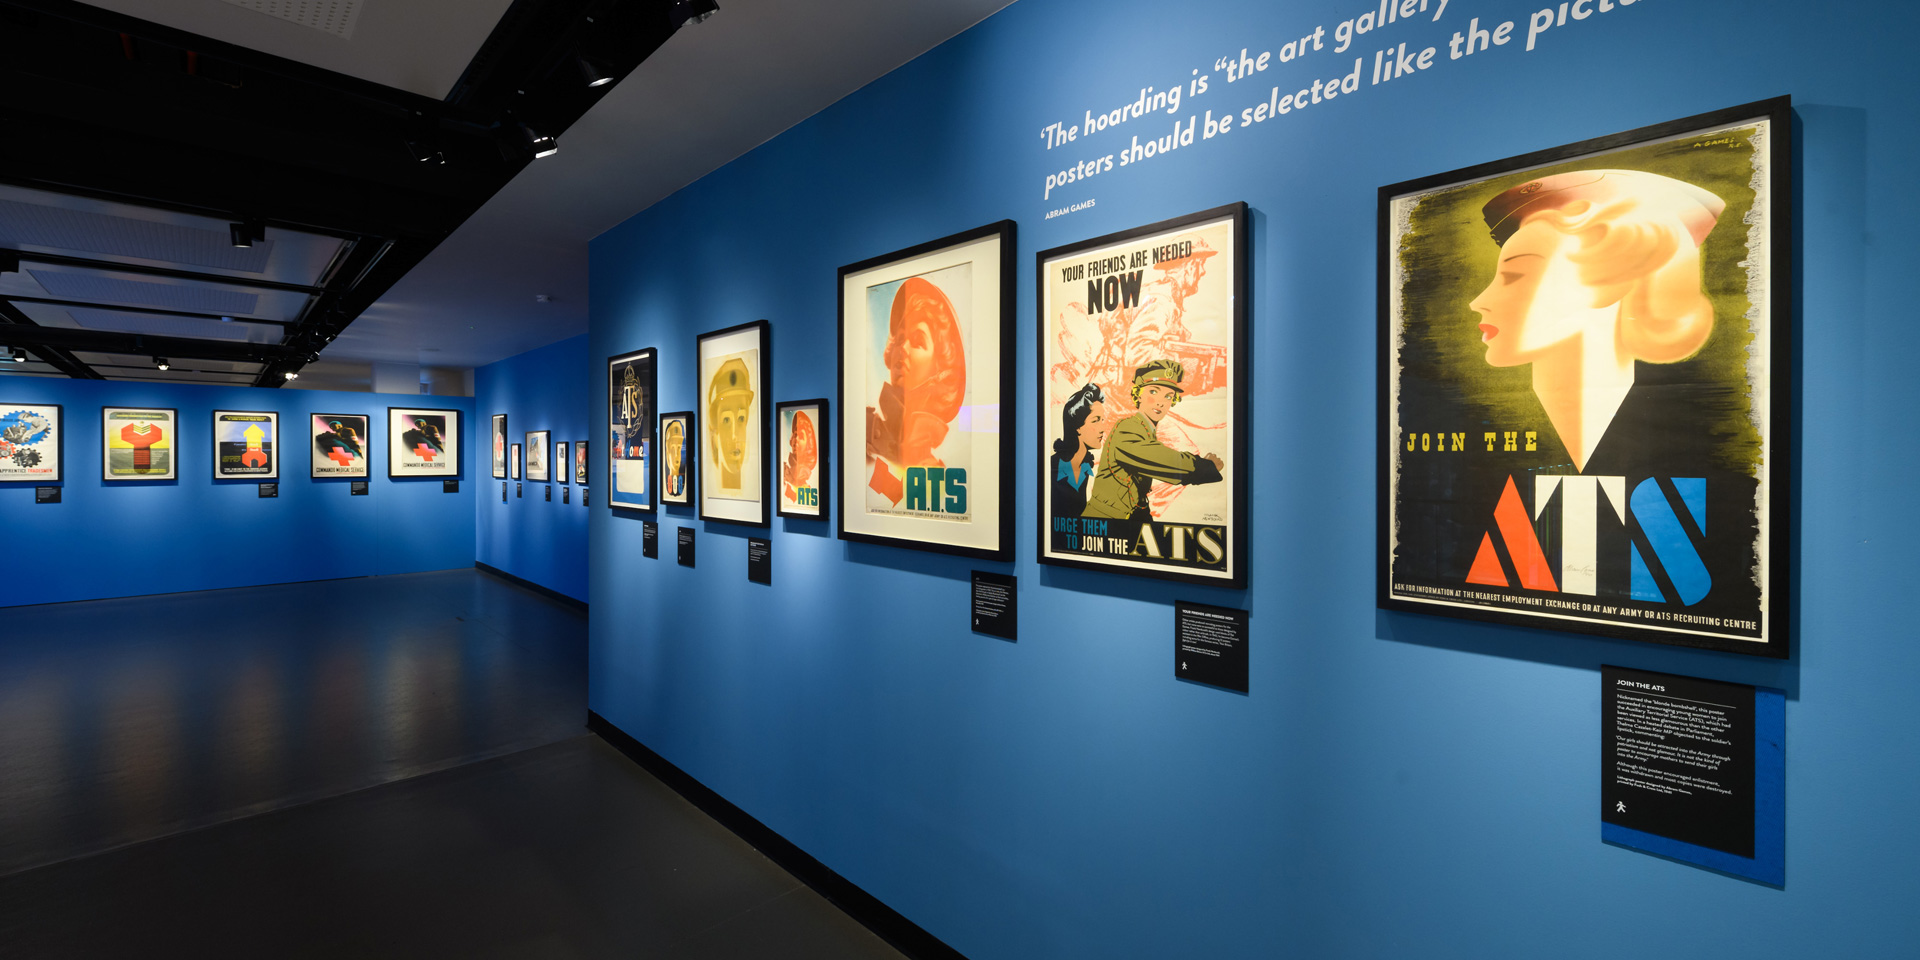 Recruiting posters by Abram Games on display in the 'Art of Persuasion' exhibition